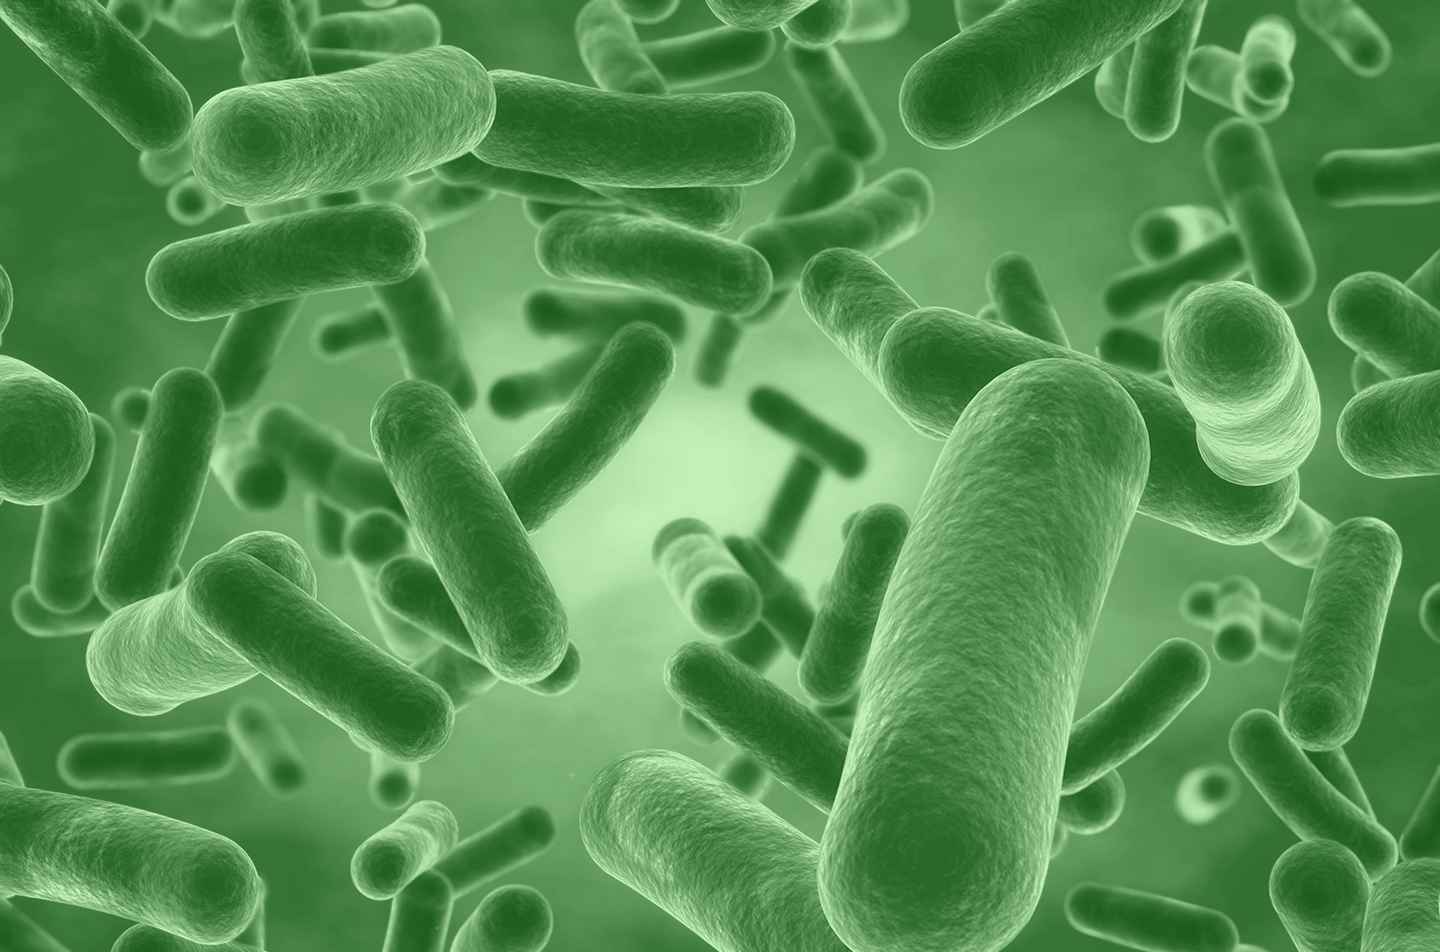 Probiotics 101: What are Human Origin Strains?